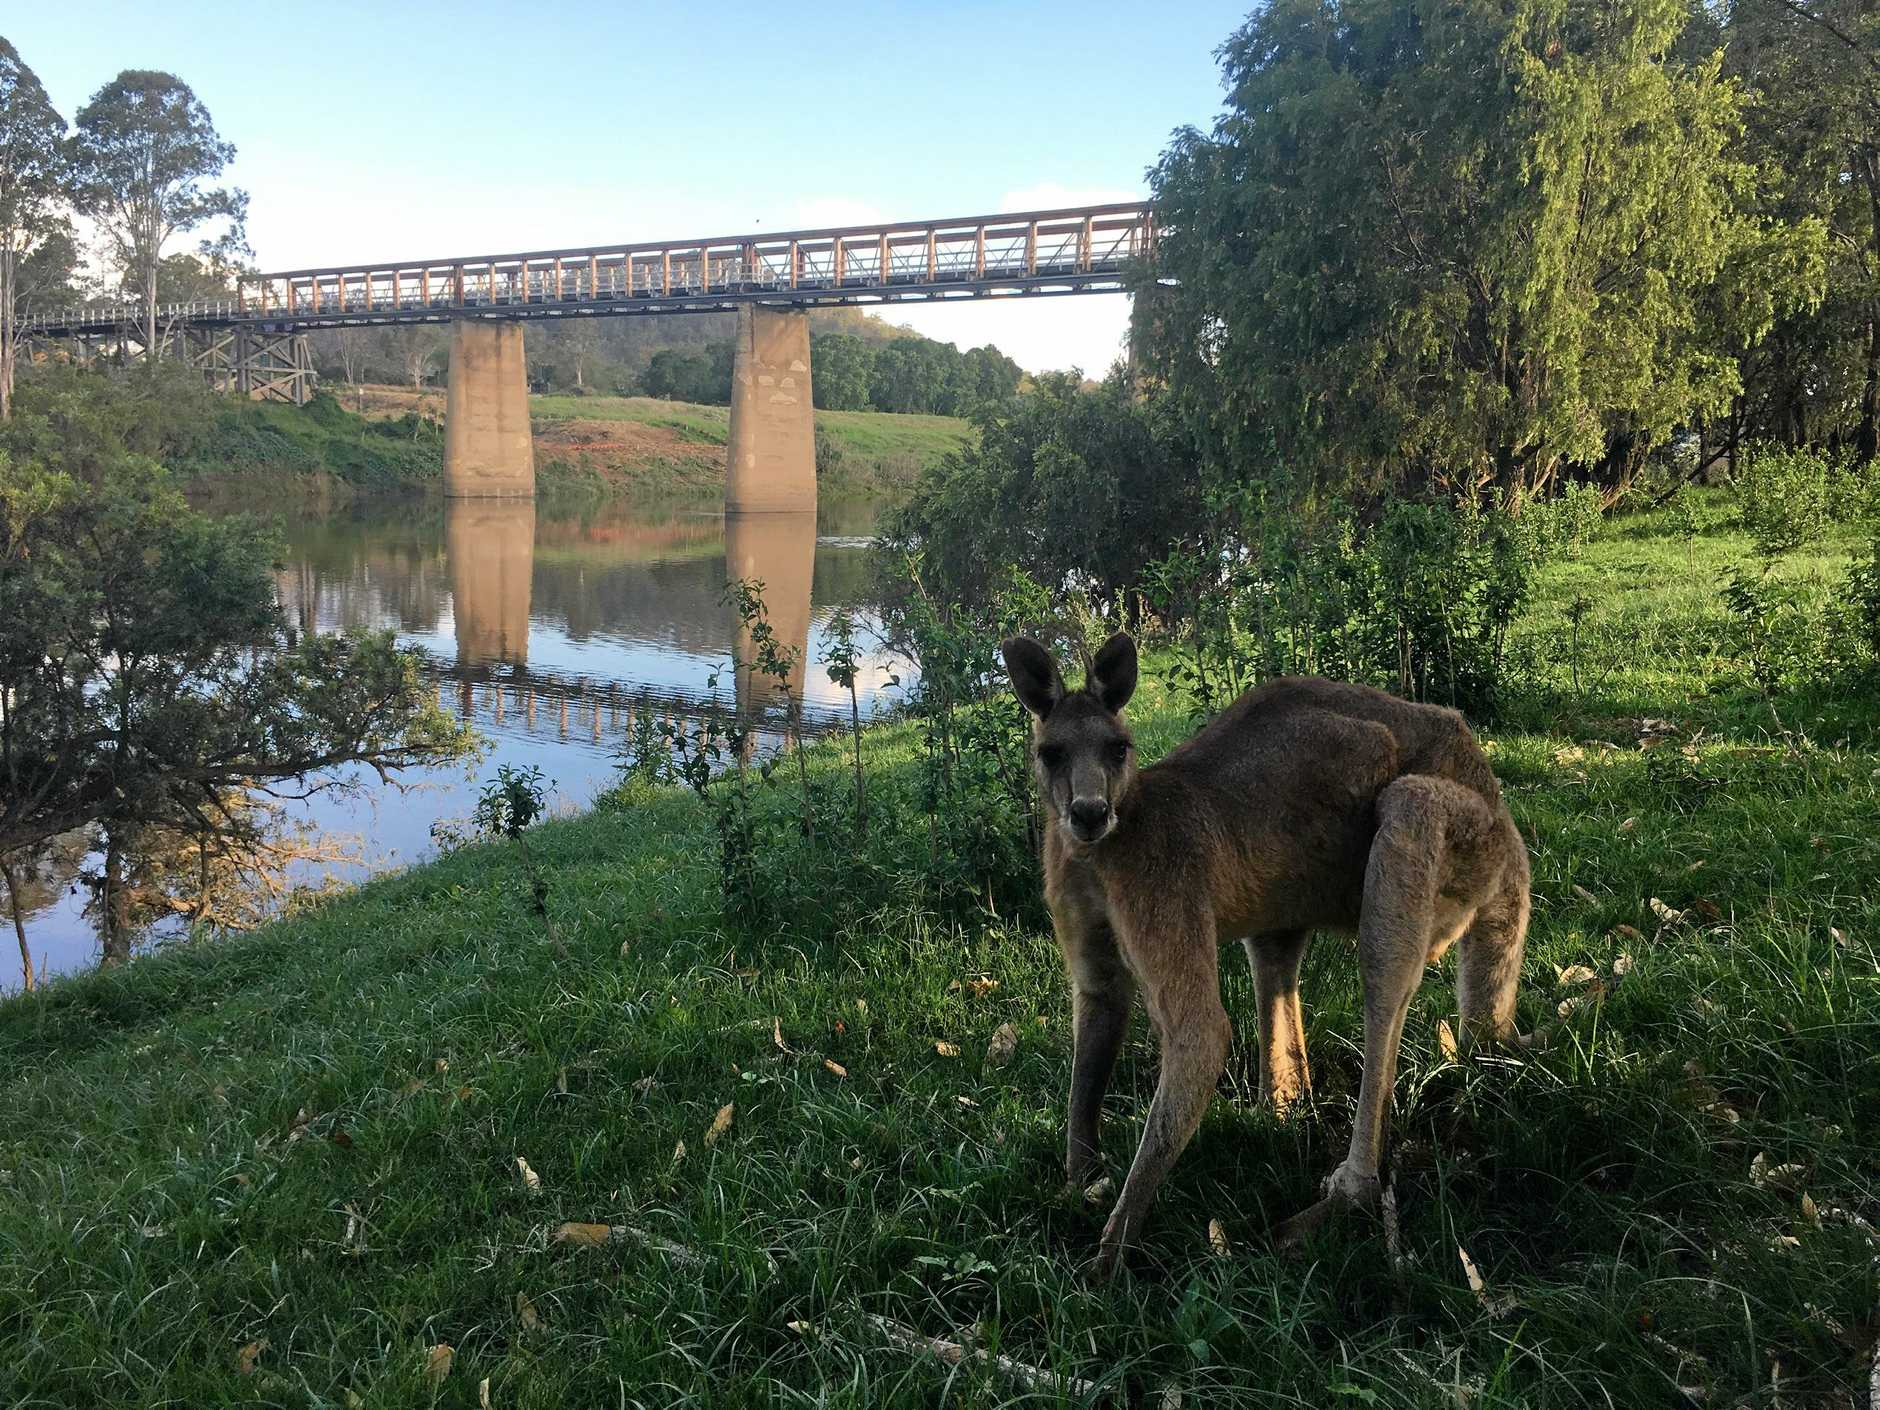 END OF AN ERA: Tabulam grazier John Cousins has started an indigenous and non-indigenous petition to protest the impending demolition of the historic Tabulam Bridge.